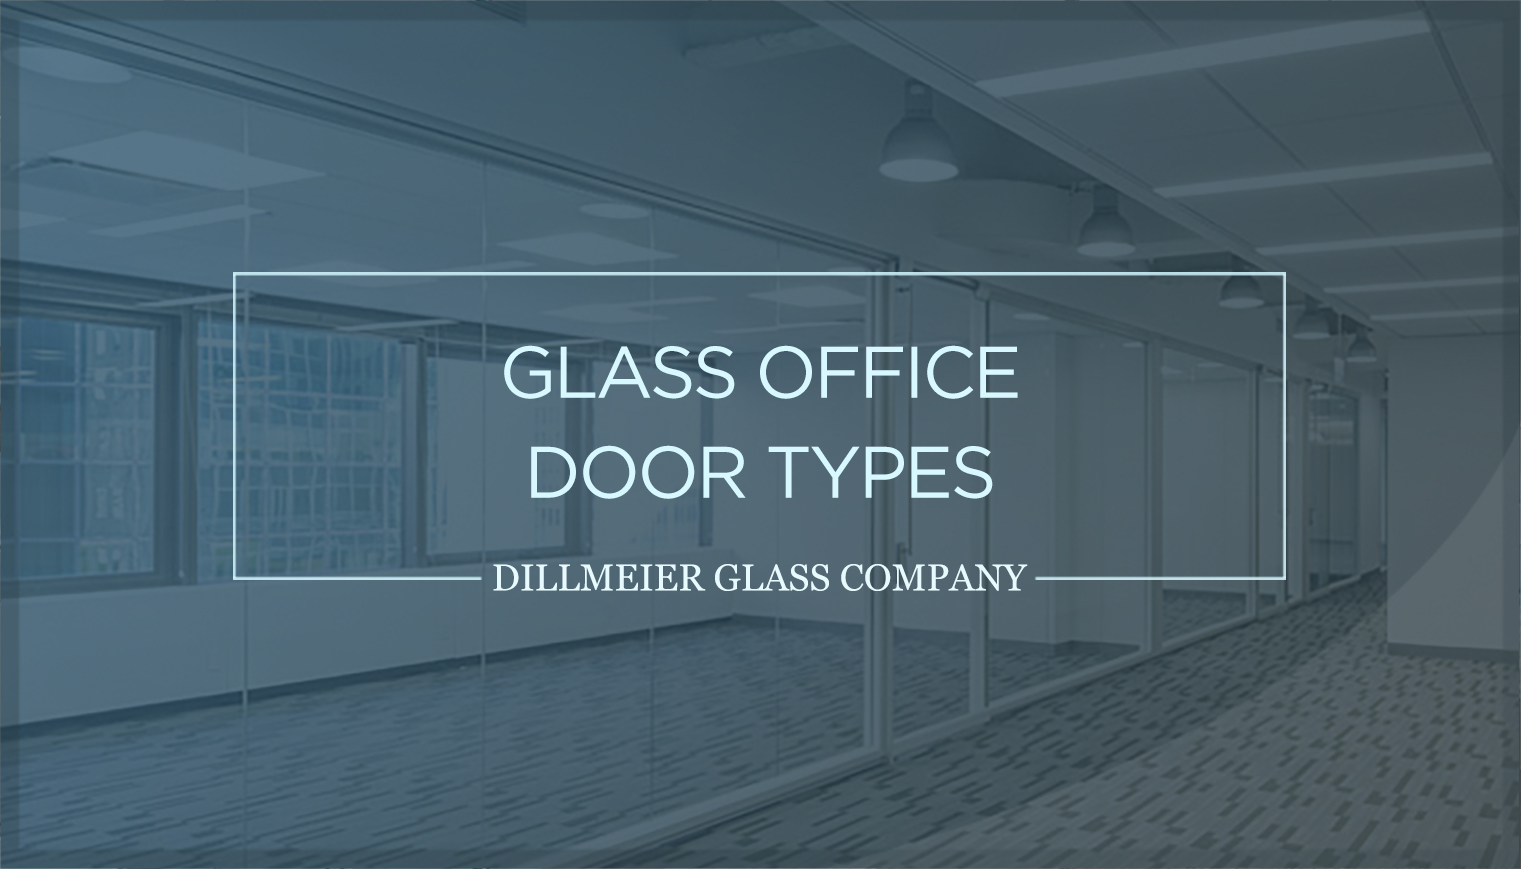 Glass-Office-Door-Types